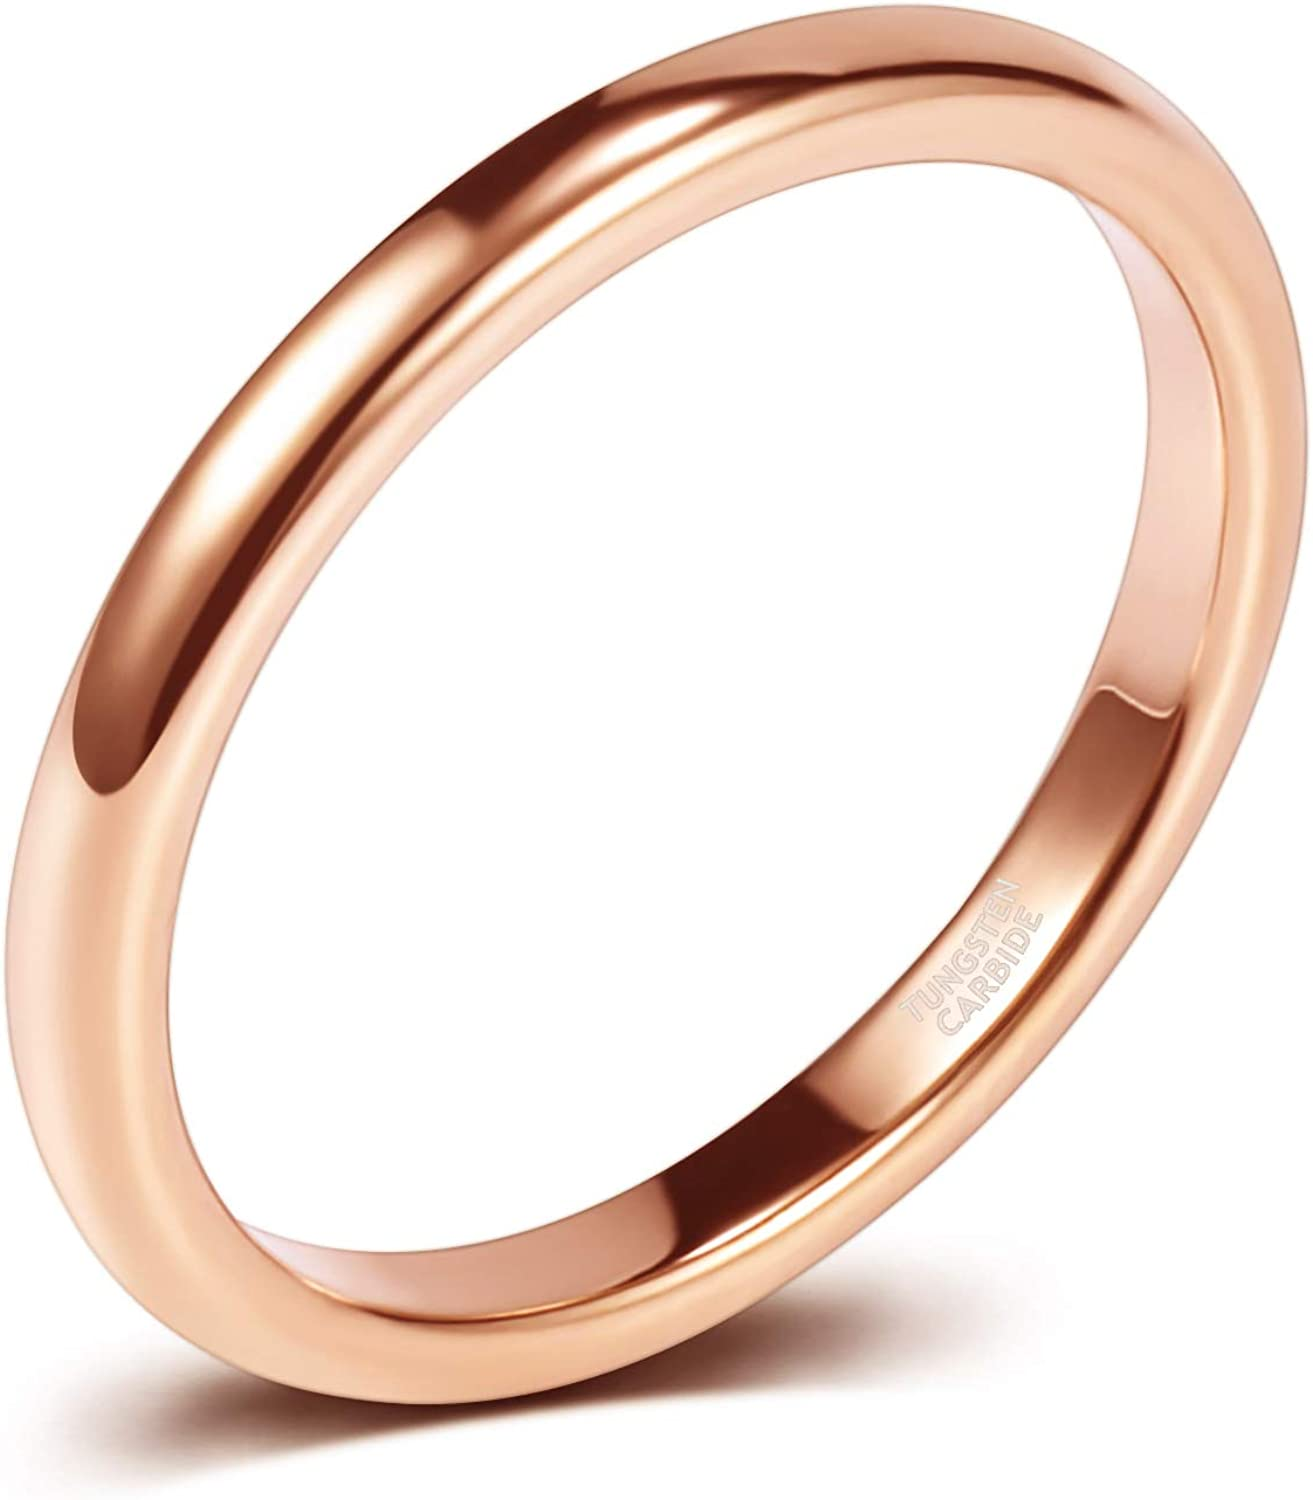 It is a photo of SOMEN TUNGSTEN 411mm Thin Tungsten Carbide Ring Wedding Band Rose Gold/Silver High Polish Comfort Fit Size 41-1411